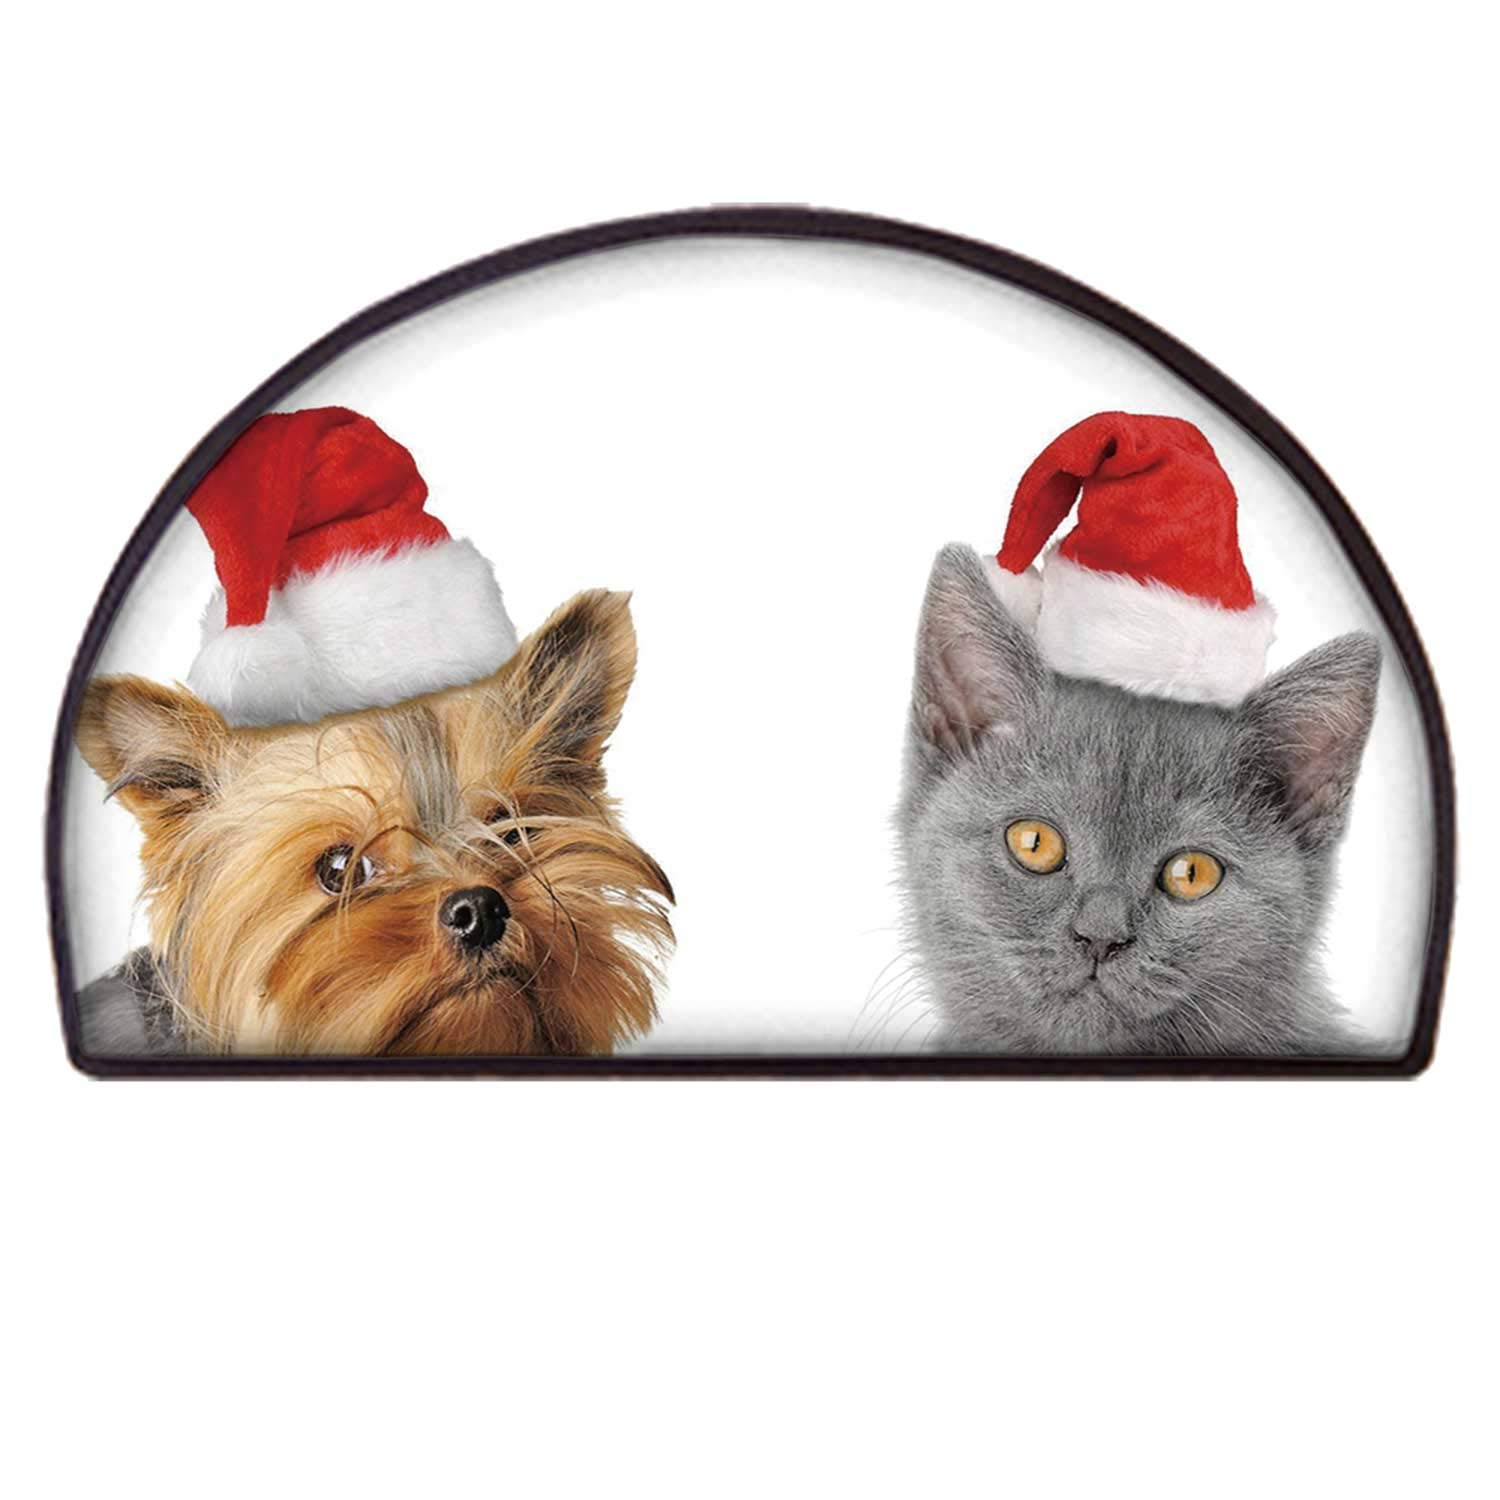 C COABALLA Christmas Practical Semicircle Mat,Adorable Cat and Dog with Xmas Hats Domestic Pet Animals Holiday Celebration Decorative for Back Door,100 x 200cm / 39.37 x 78.74 inch by C COABALLA